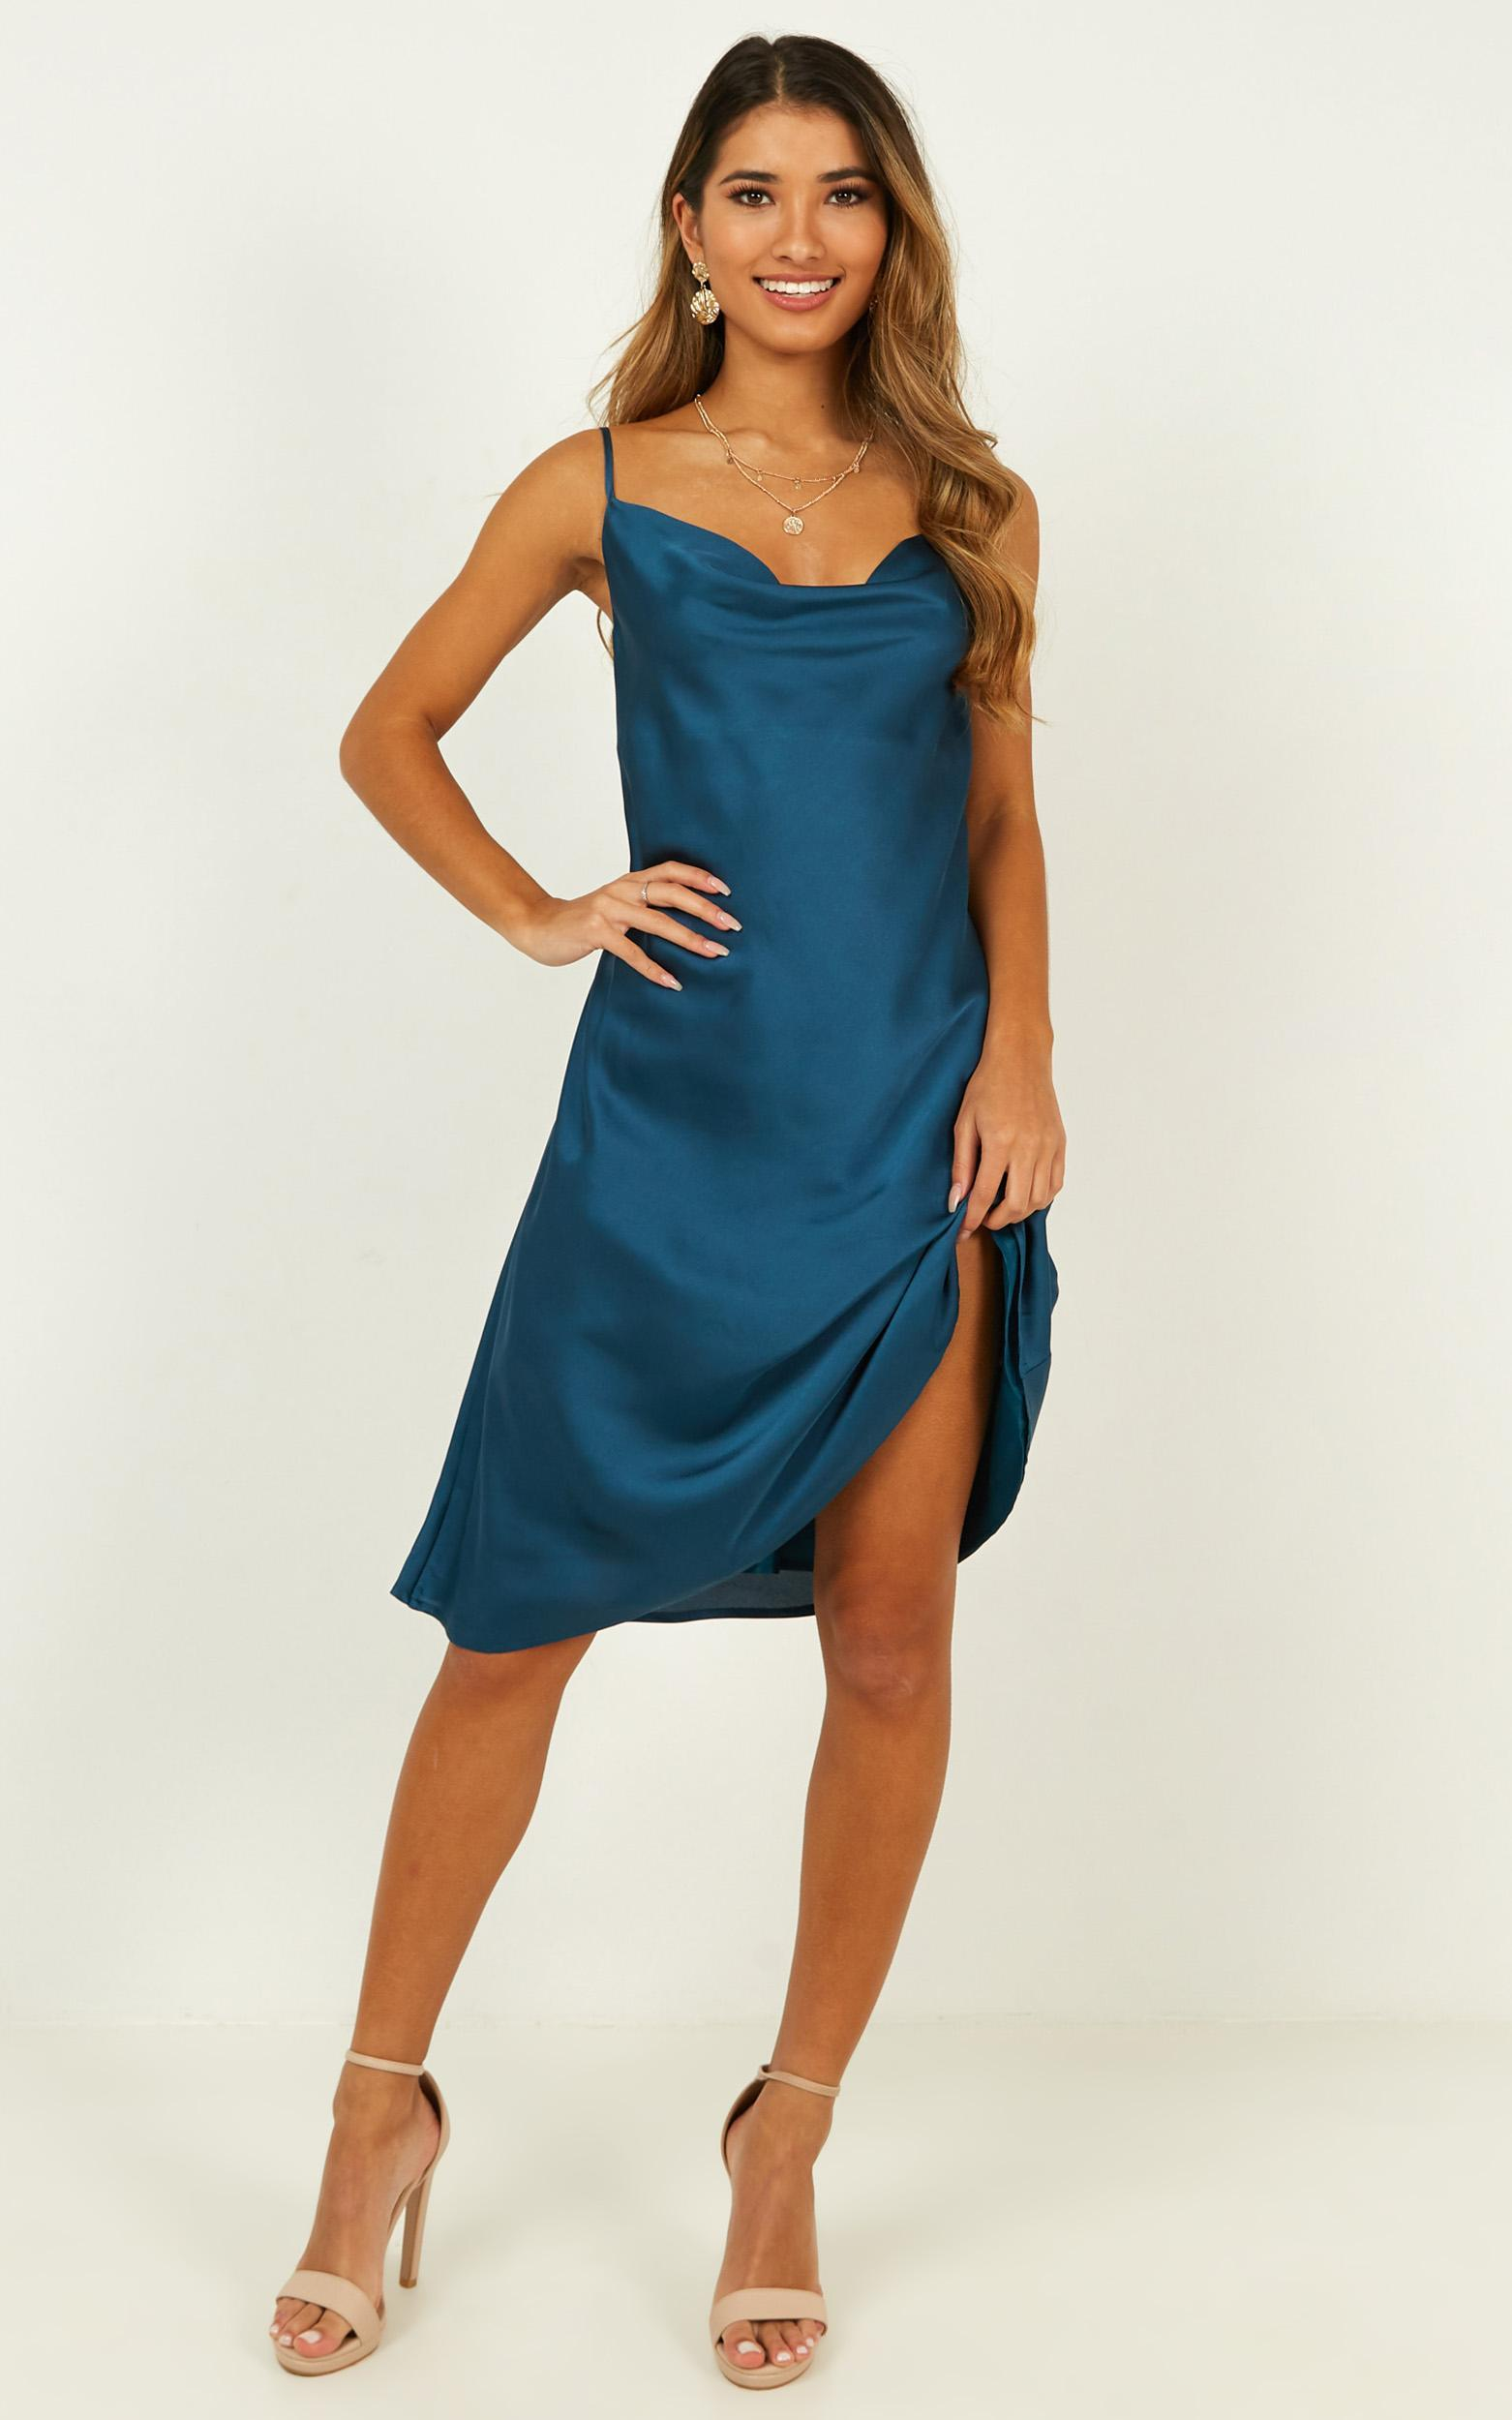 Colour me pretty dress in teal - 20 (XXXXL), Green, hi-res image number null